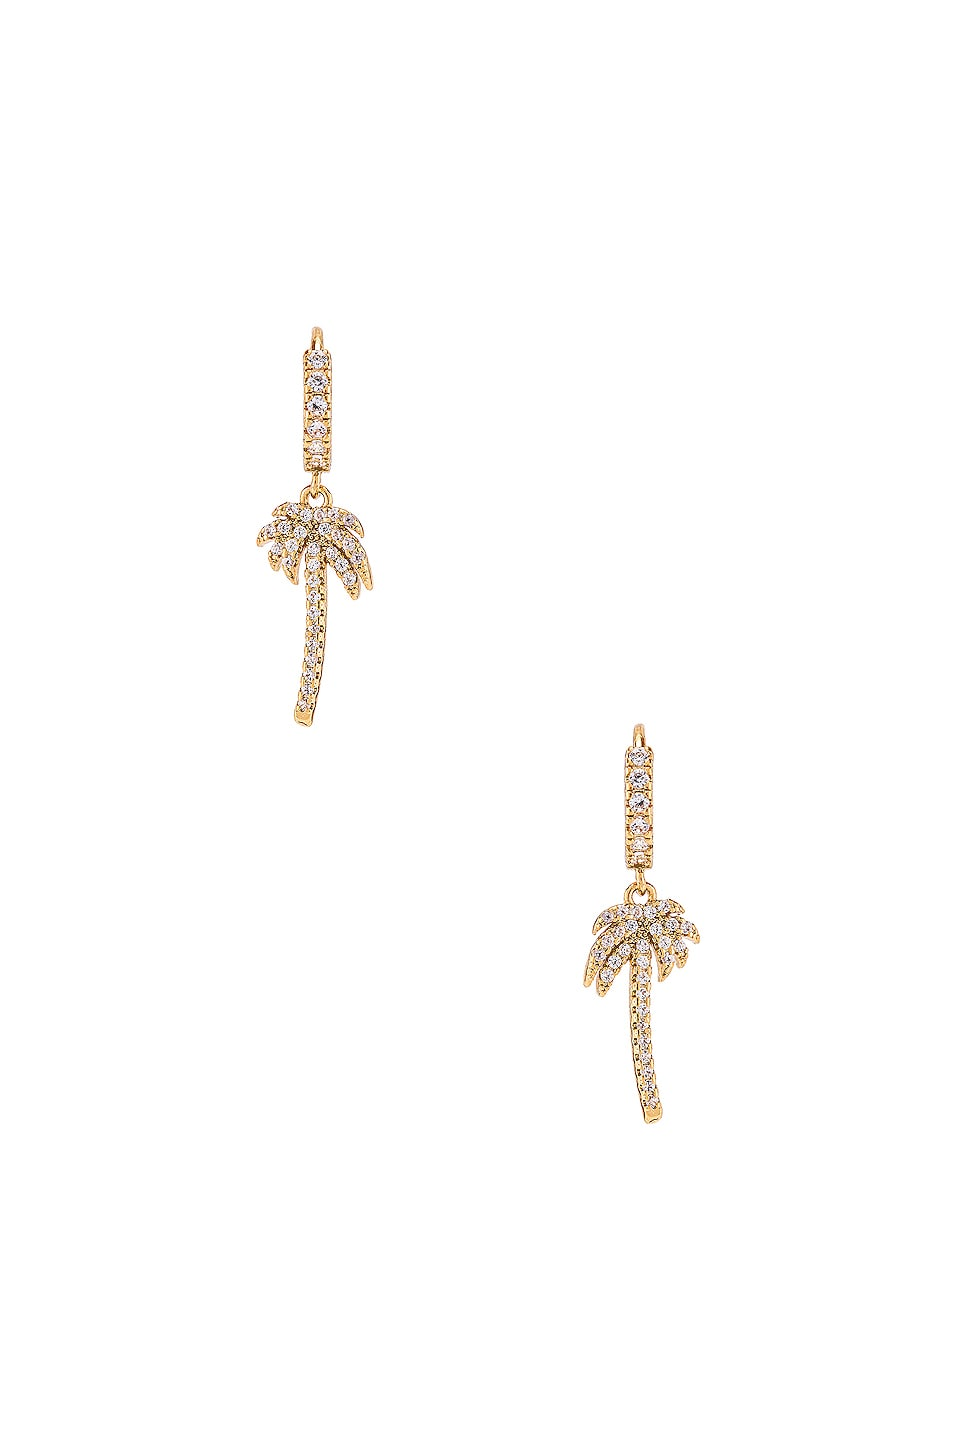 Ettika Palm Tree Huggie Earrings in Gold